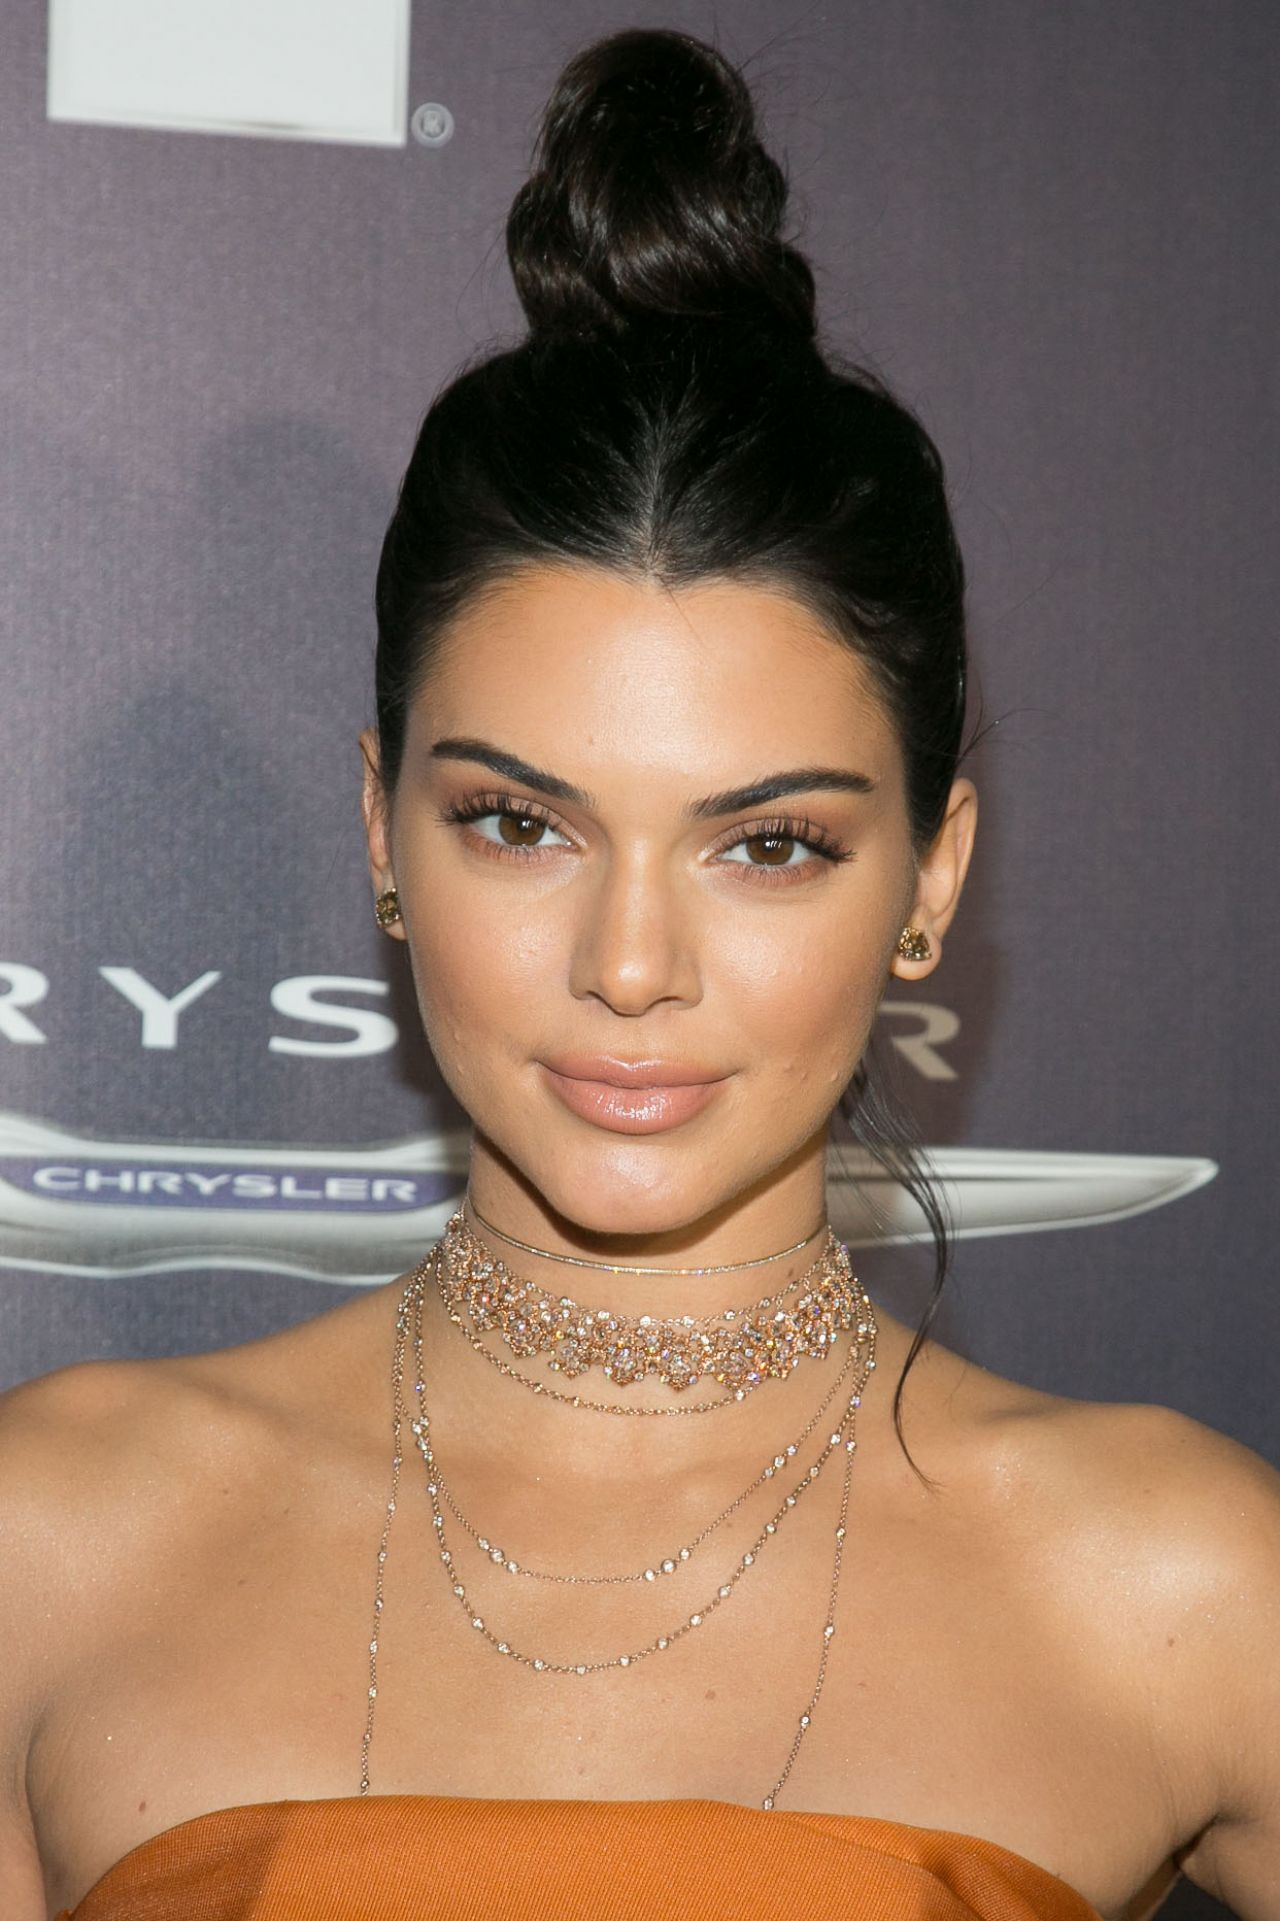 Kendall Jenner attends the Universal, NBC, Focus Features, E! Entertainment  Golden Globes after party 3c36e7da6bc